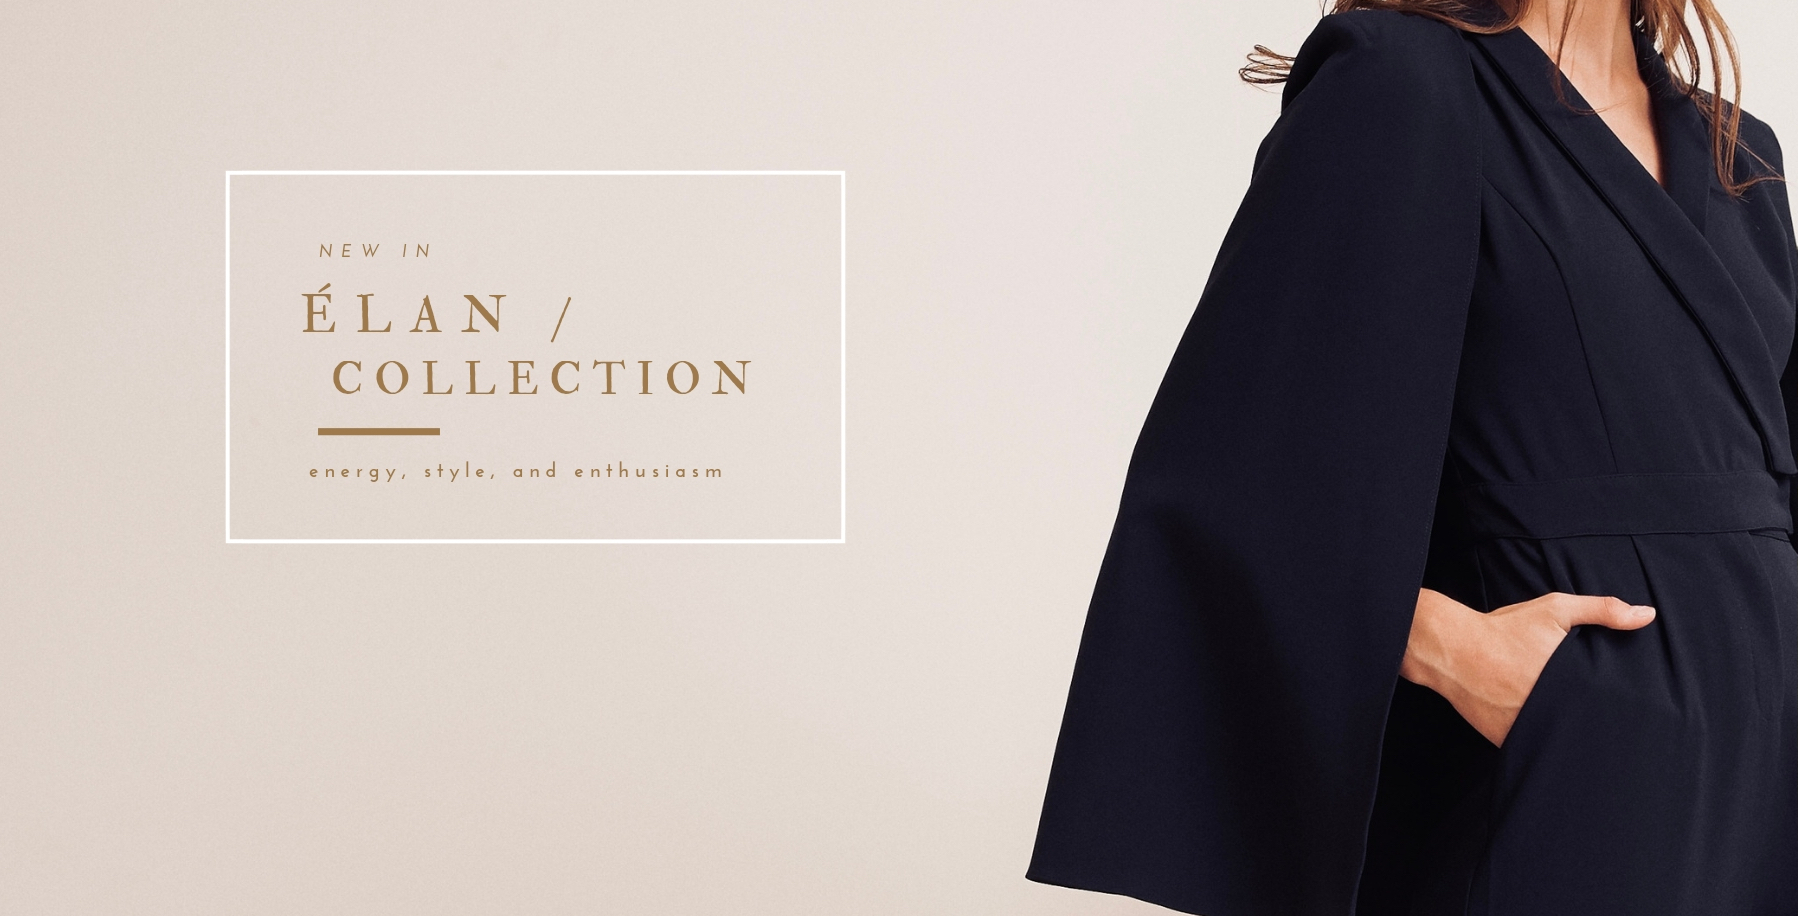 New-in:  The Elan Collection